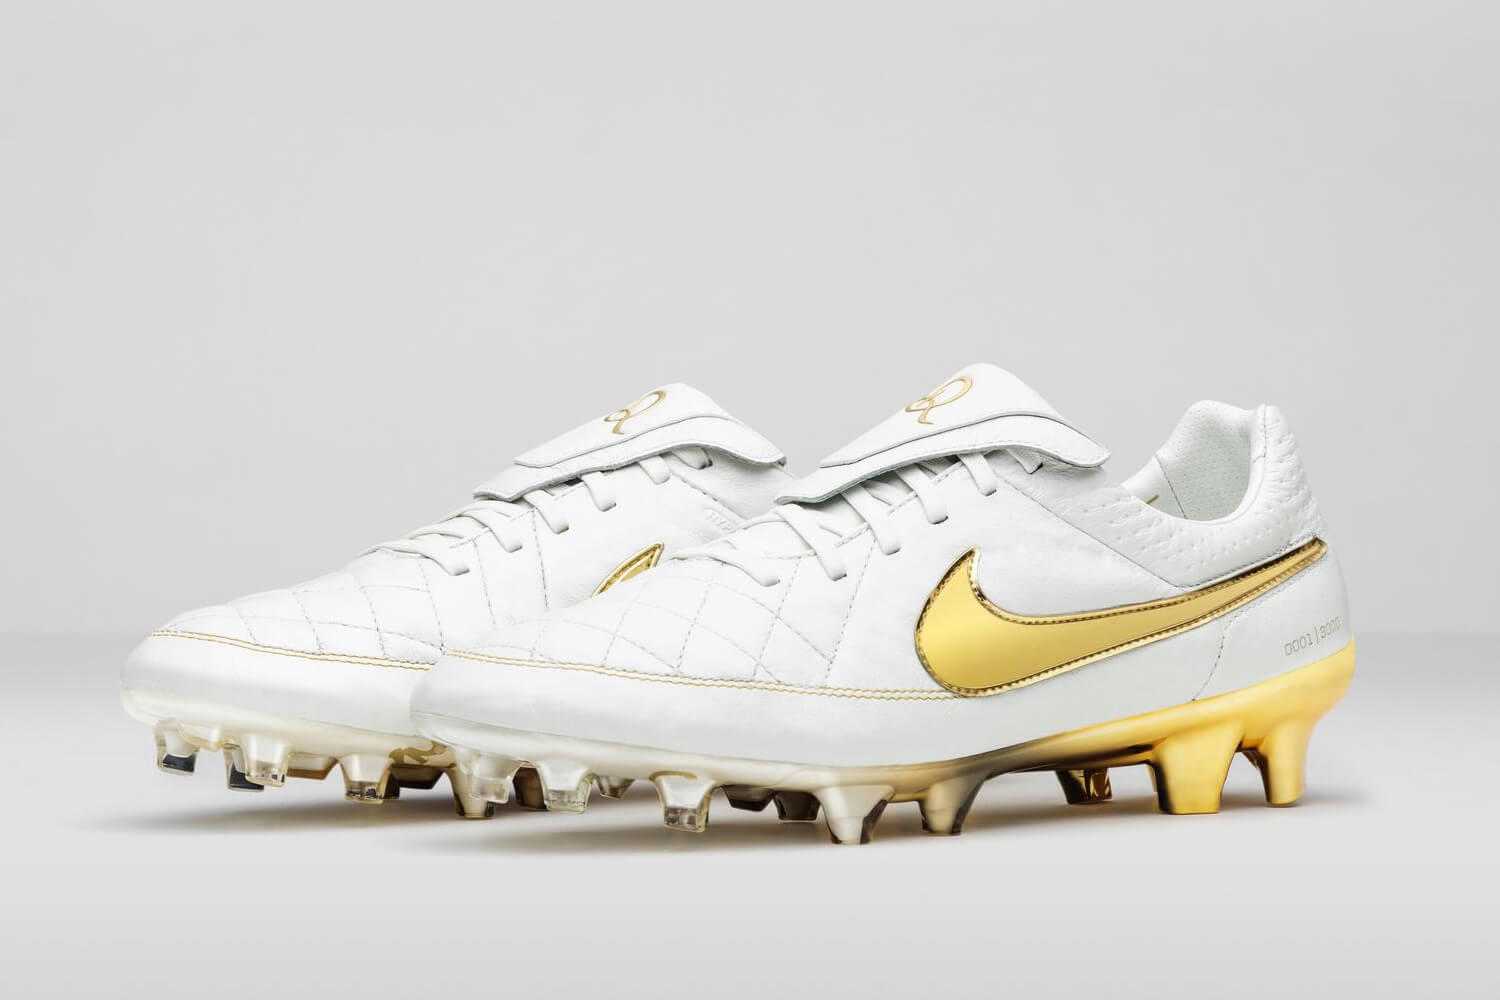 Nike's Touch of Gold Football Boot